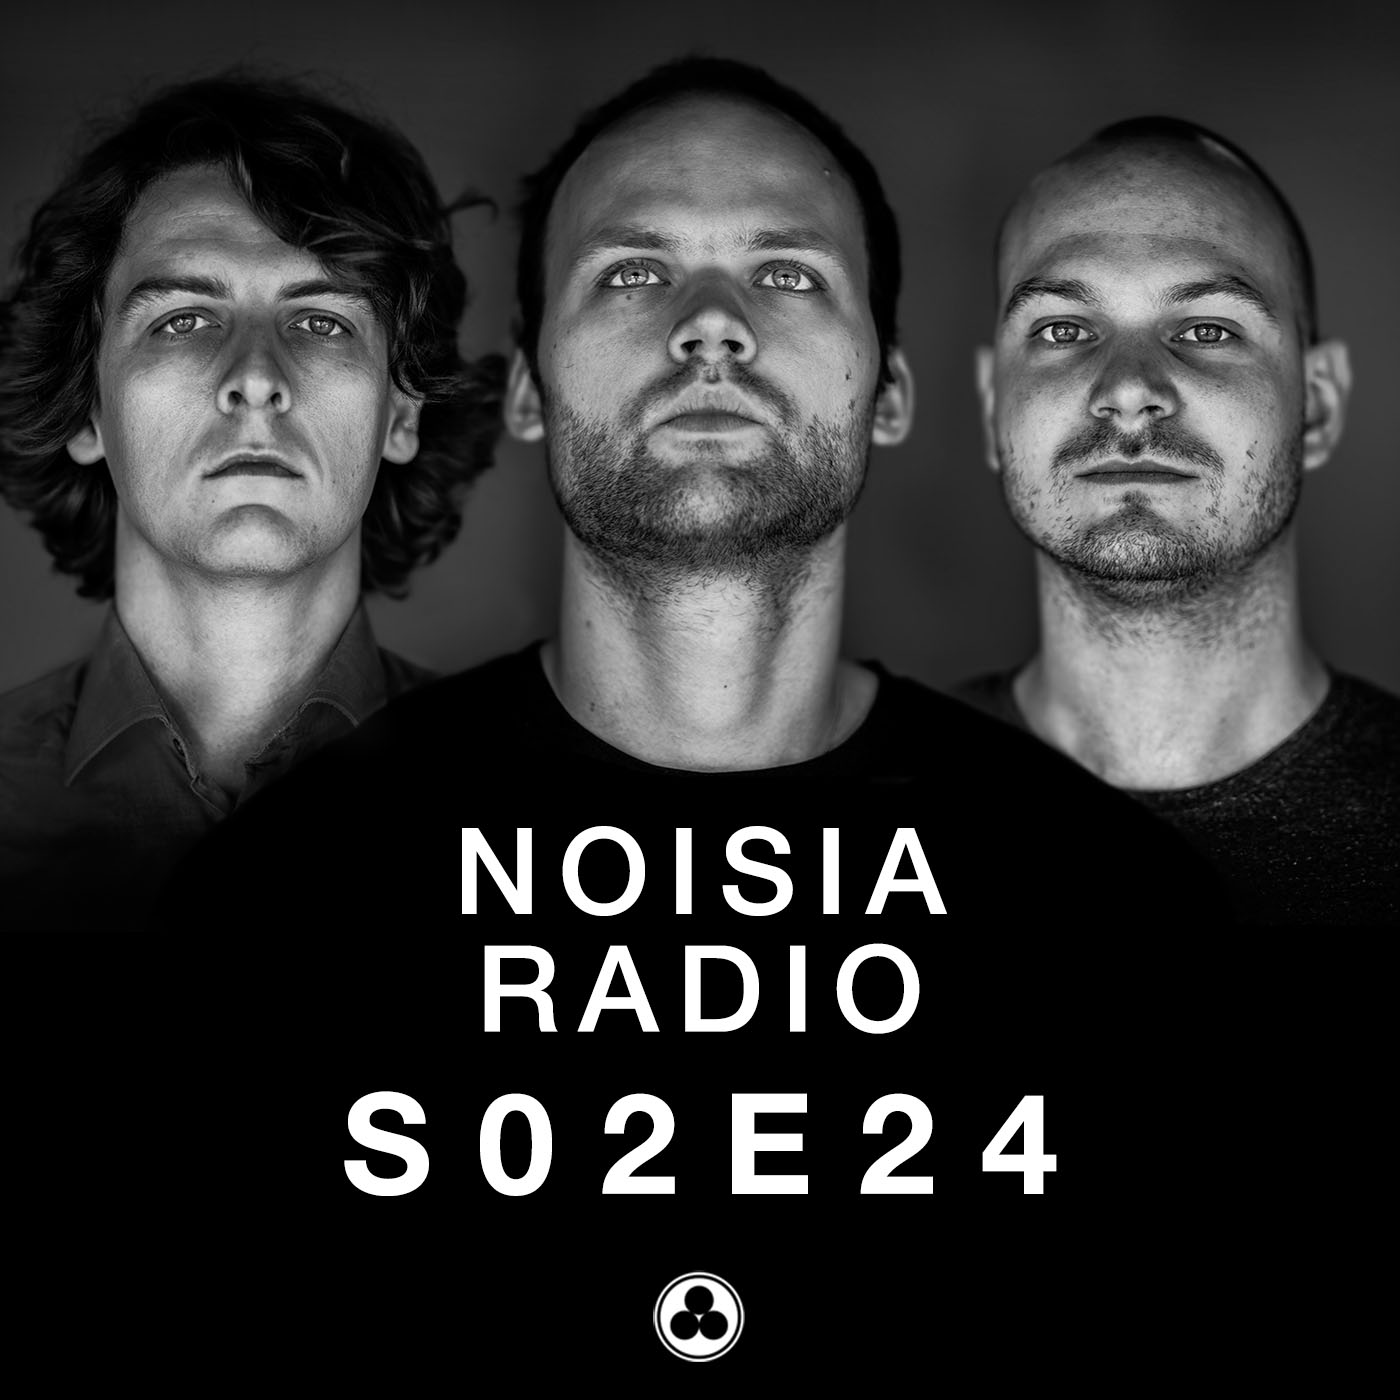 Noisia Radio S02E24